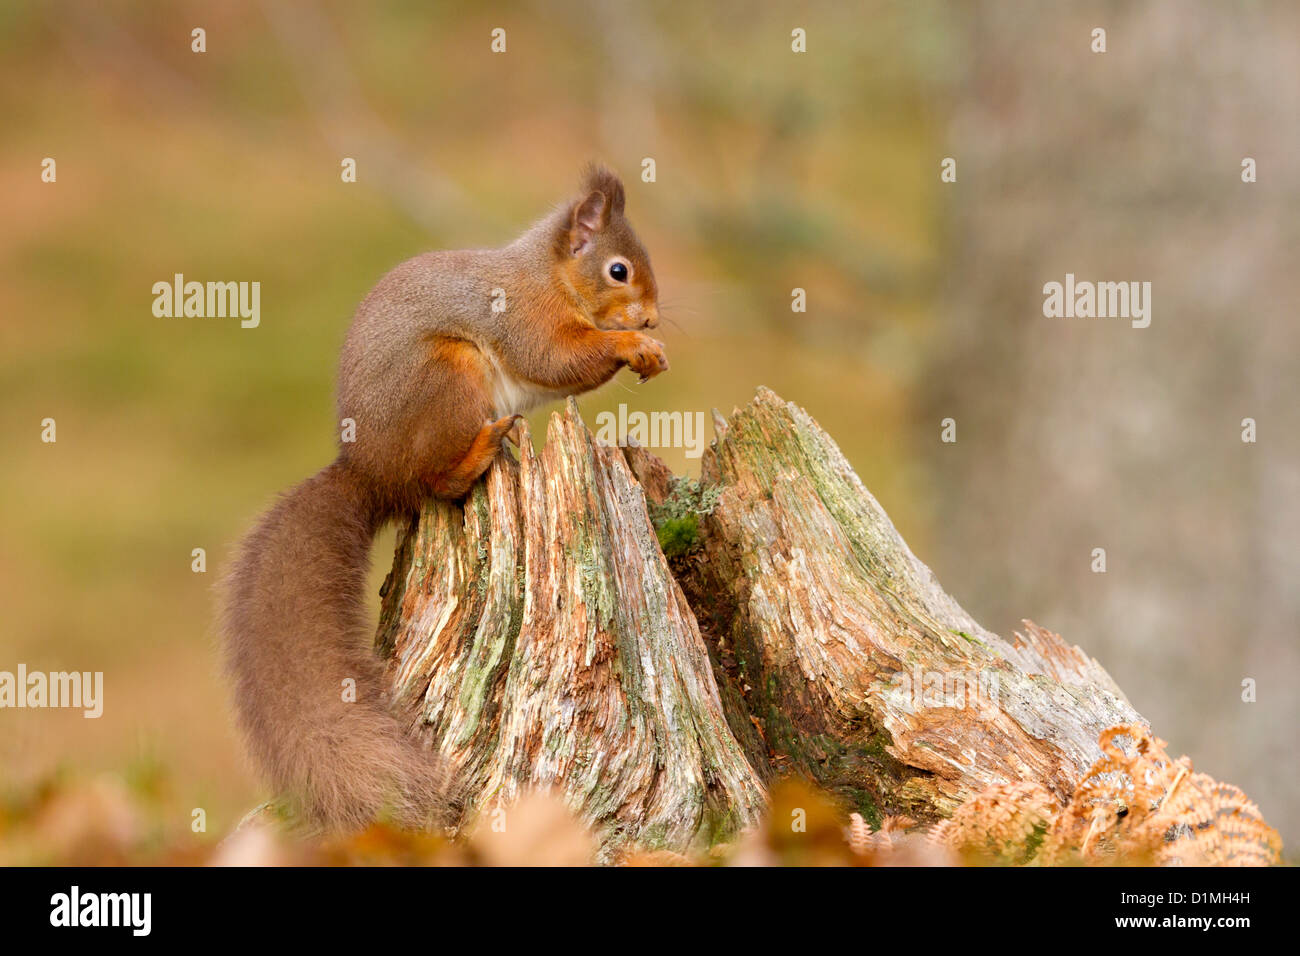 Red Squirrel Sciurus vulgaris, eating a nut, on a tree stump in the Glen More forest, Scotland. - Stock Image